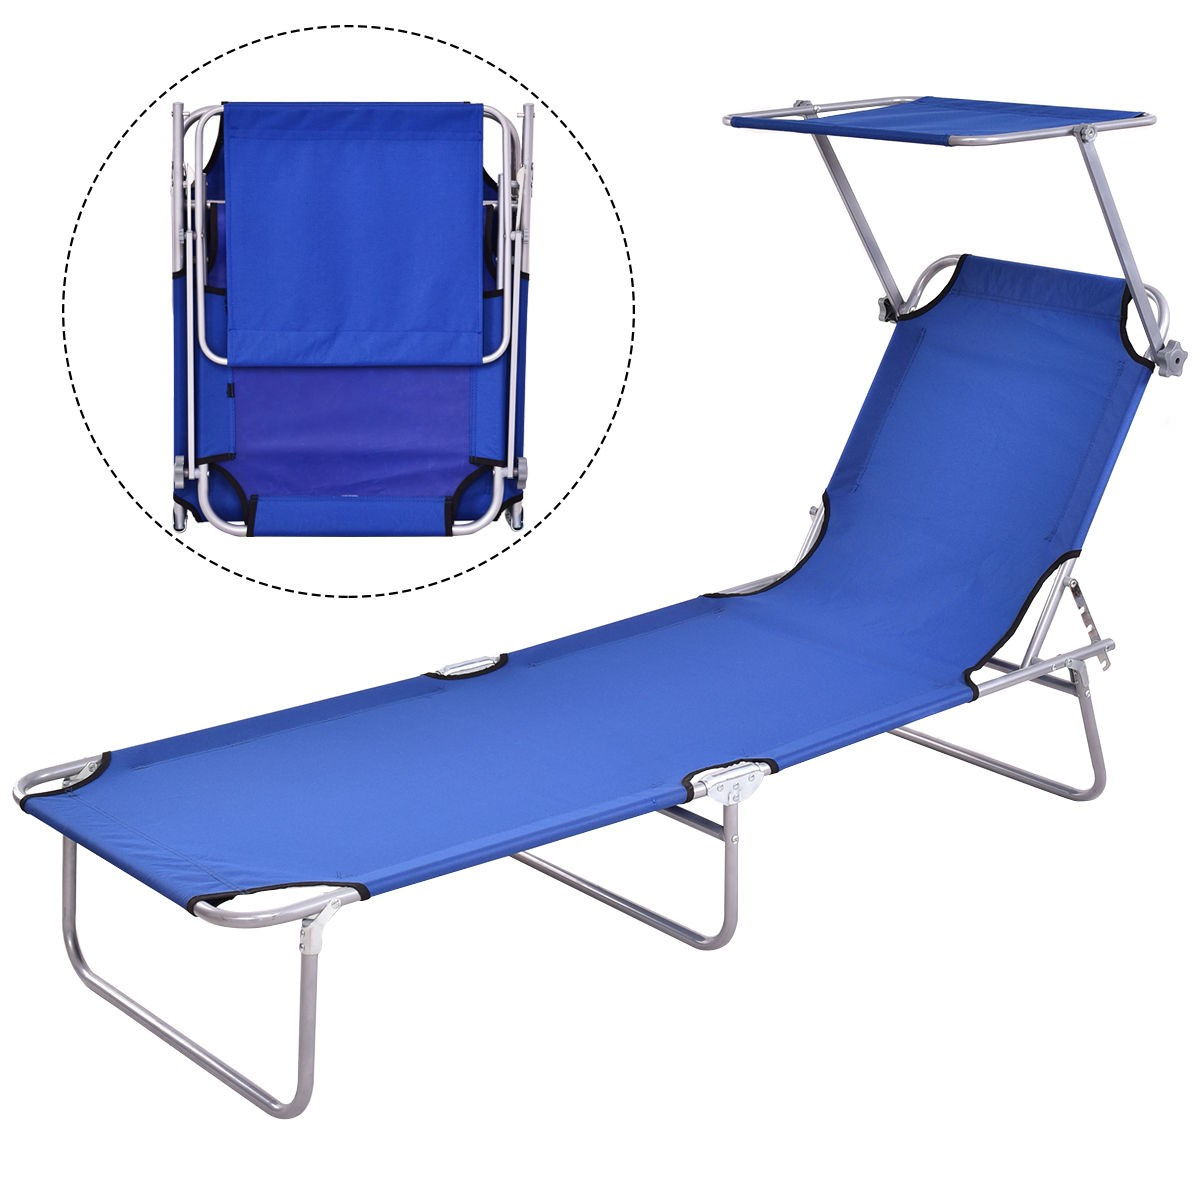 Recent Details About Outdoor Folding Camping Recliner Lounge Beach Chair Bed Relax  Chaise W/canopy Us With Regard To Foldable Camping And Lounge Chairs (View 21 of 25)